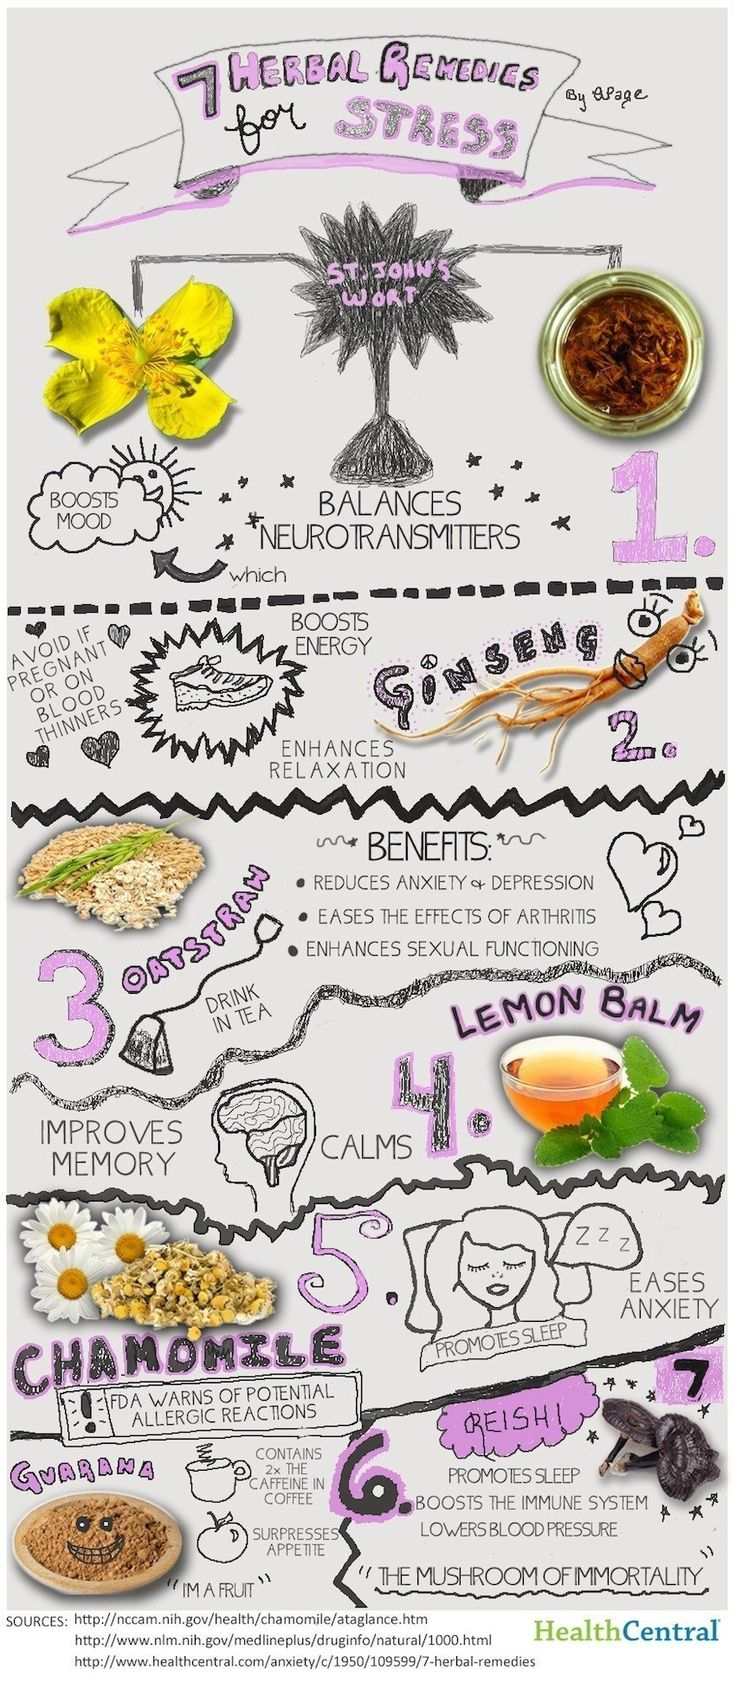 7 herbal remedies for stress.